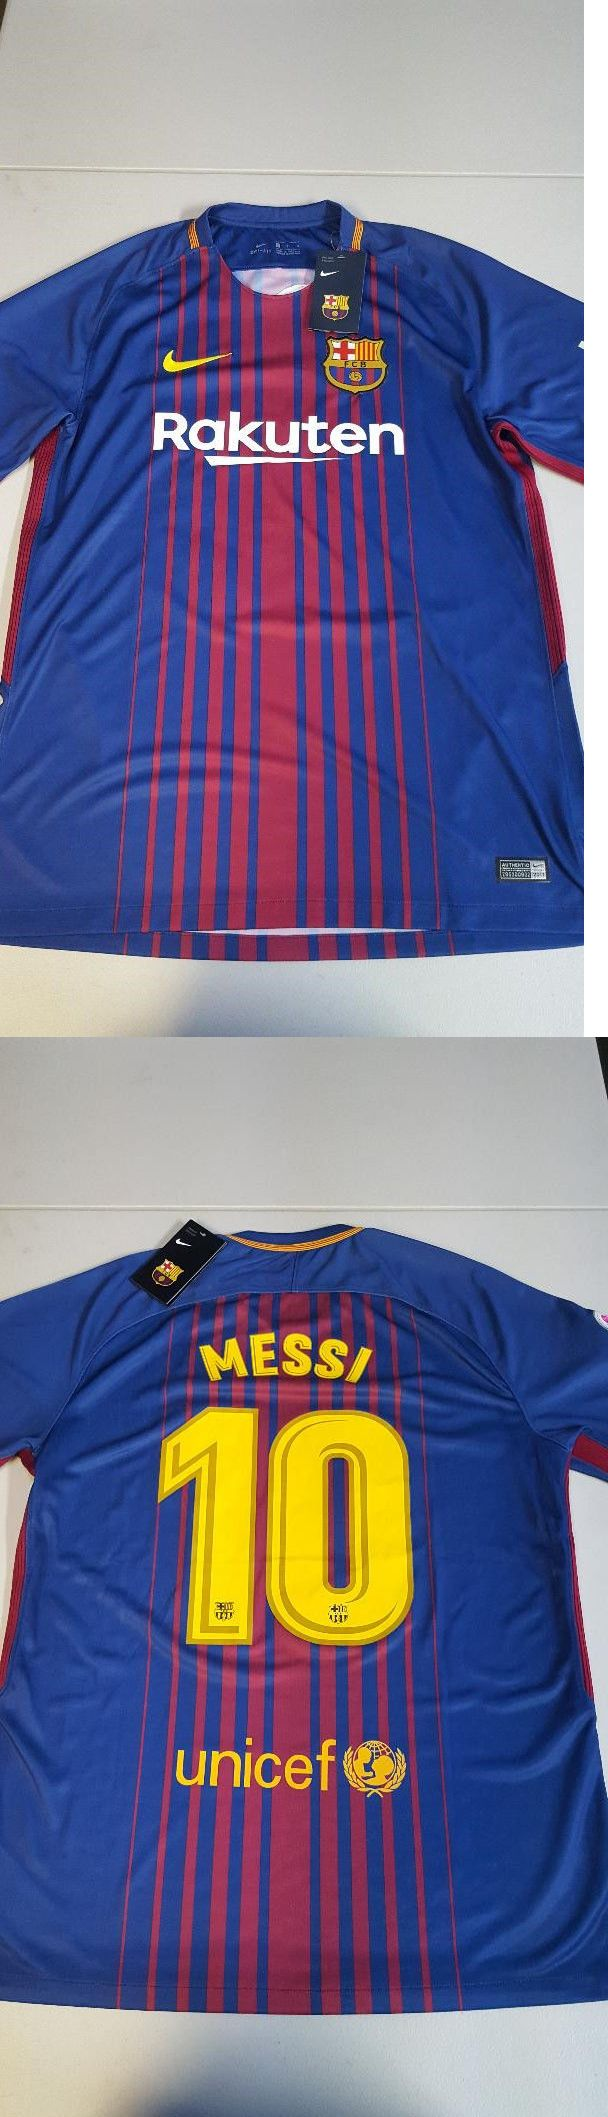 Men 123490: Fc Barcelona Nike Soccer Jersey 2017 18 Home Official Messi 10 Size L -> BUY IT NOW ONLY: $32 on eBay!